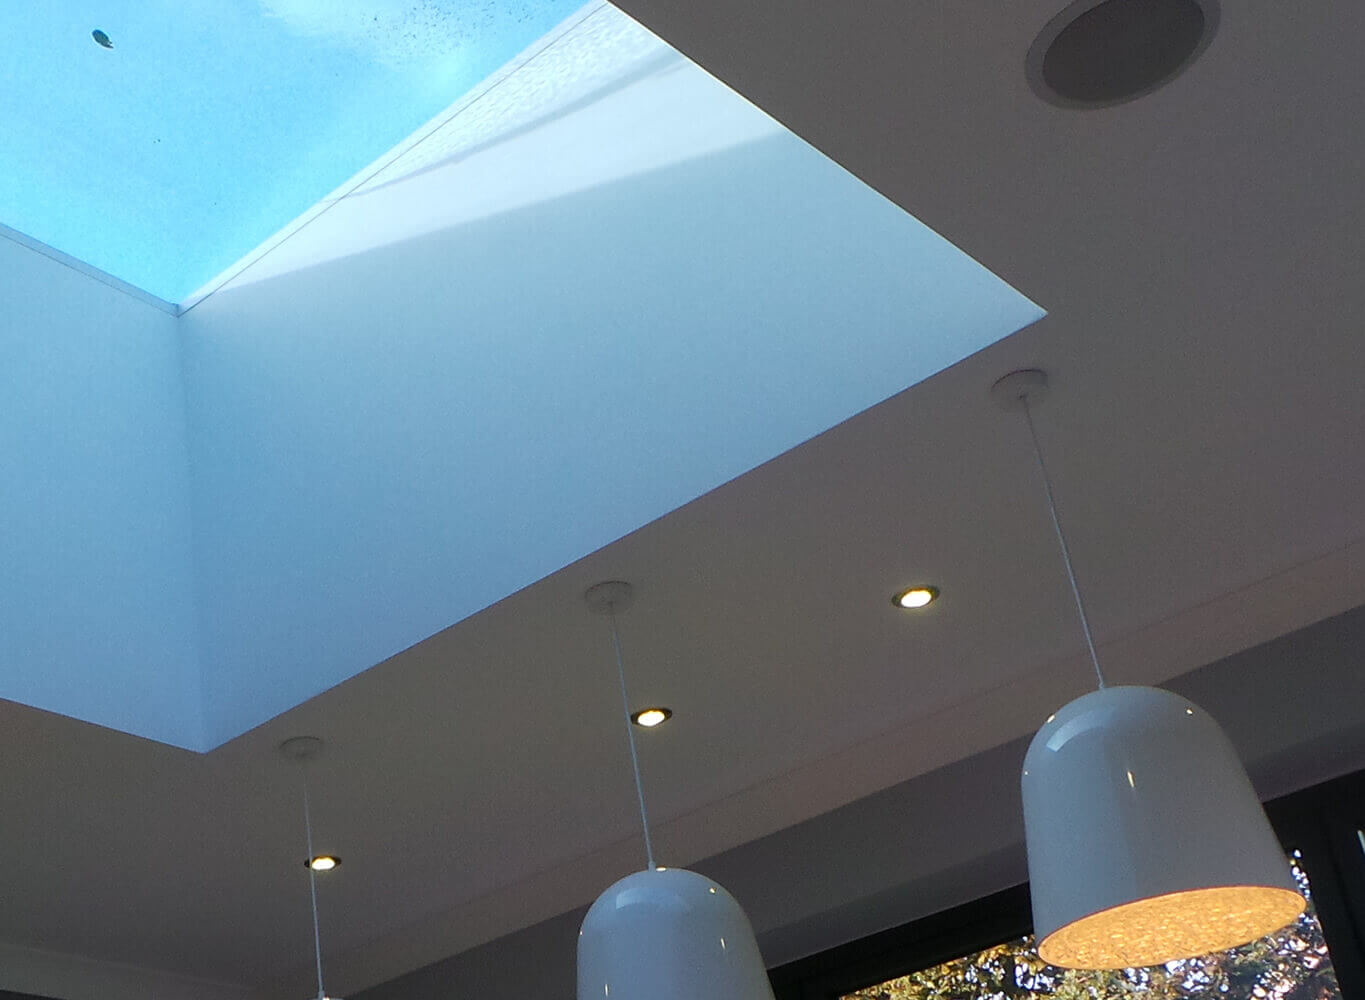 Ceiling with lamp